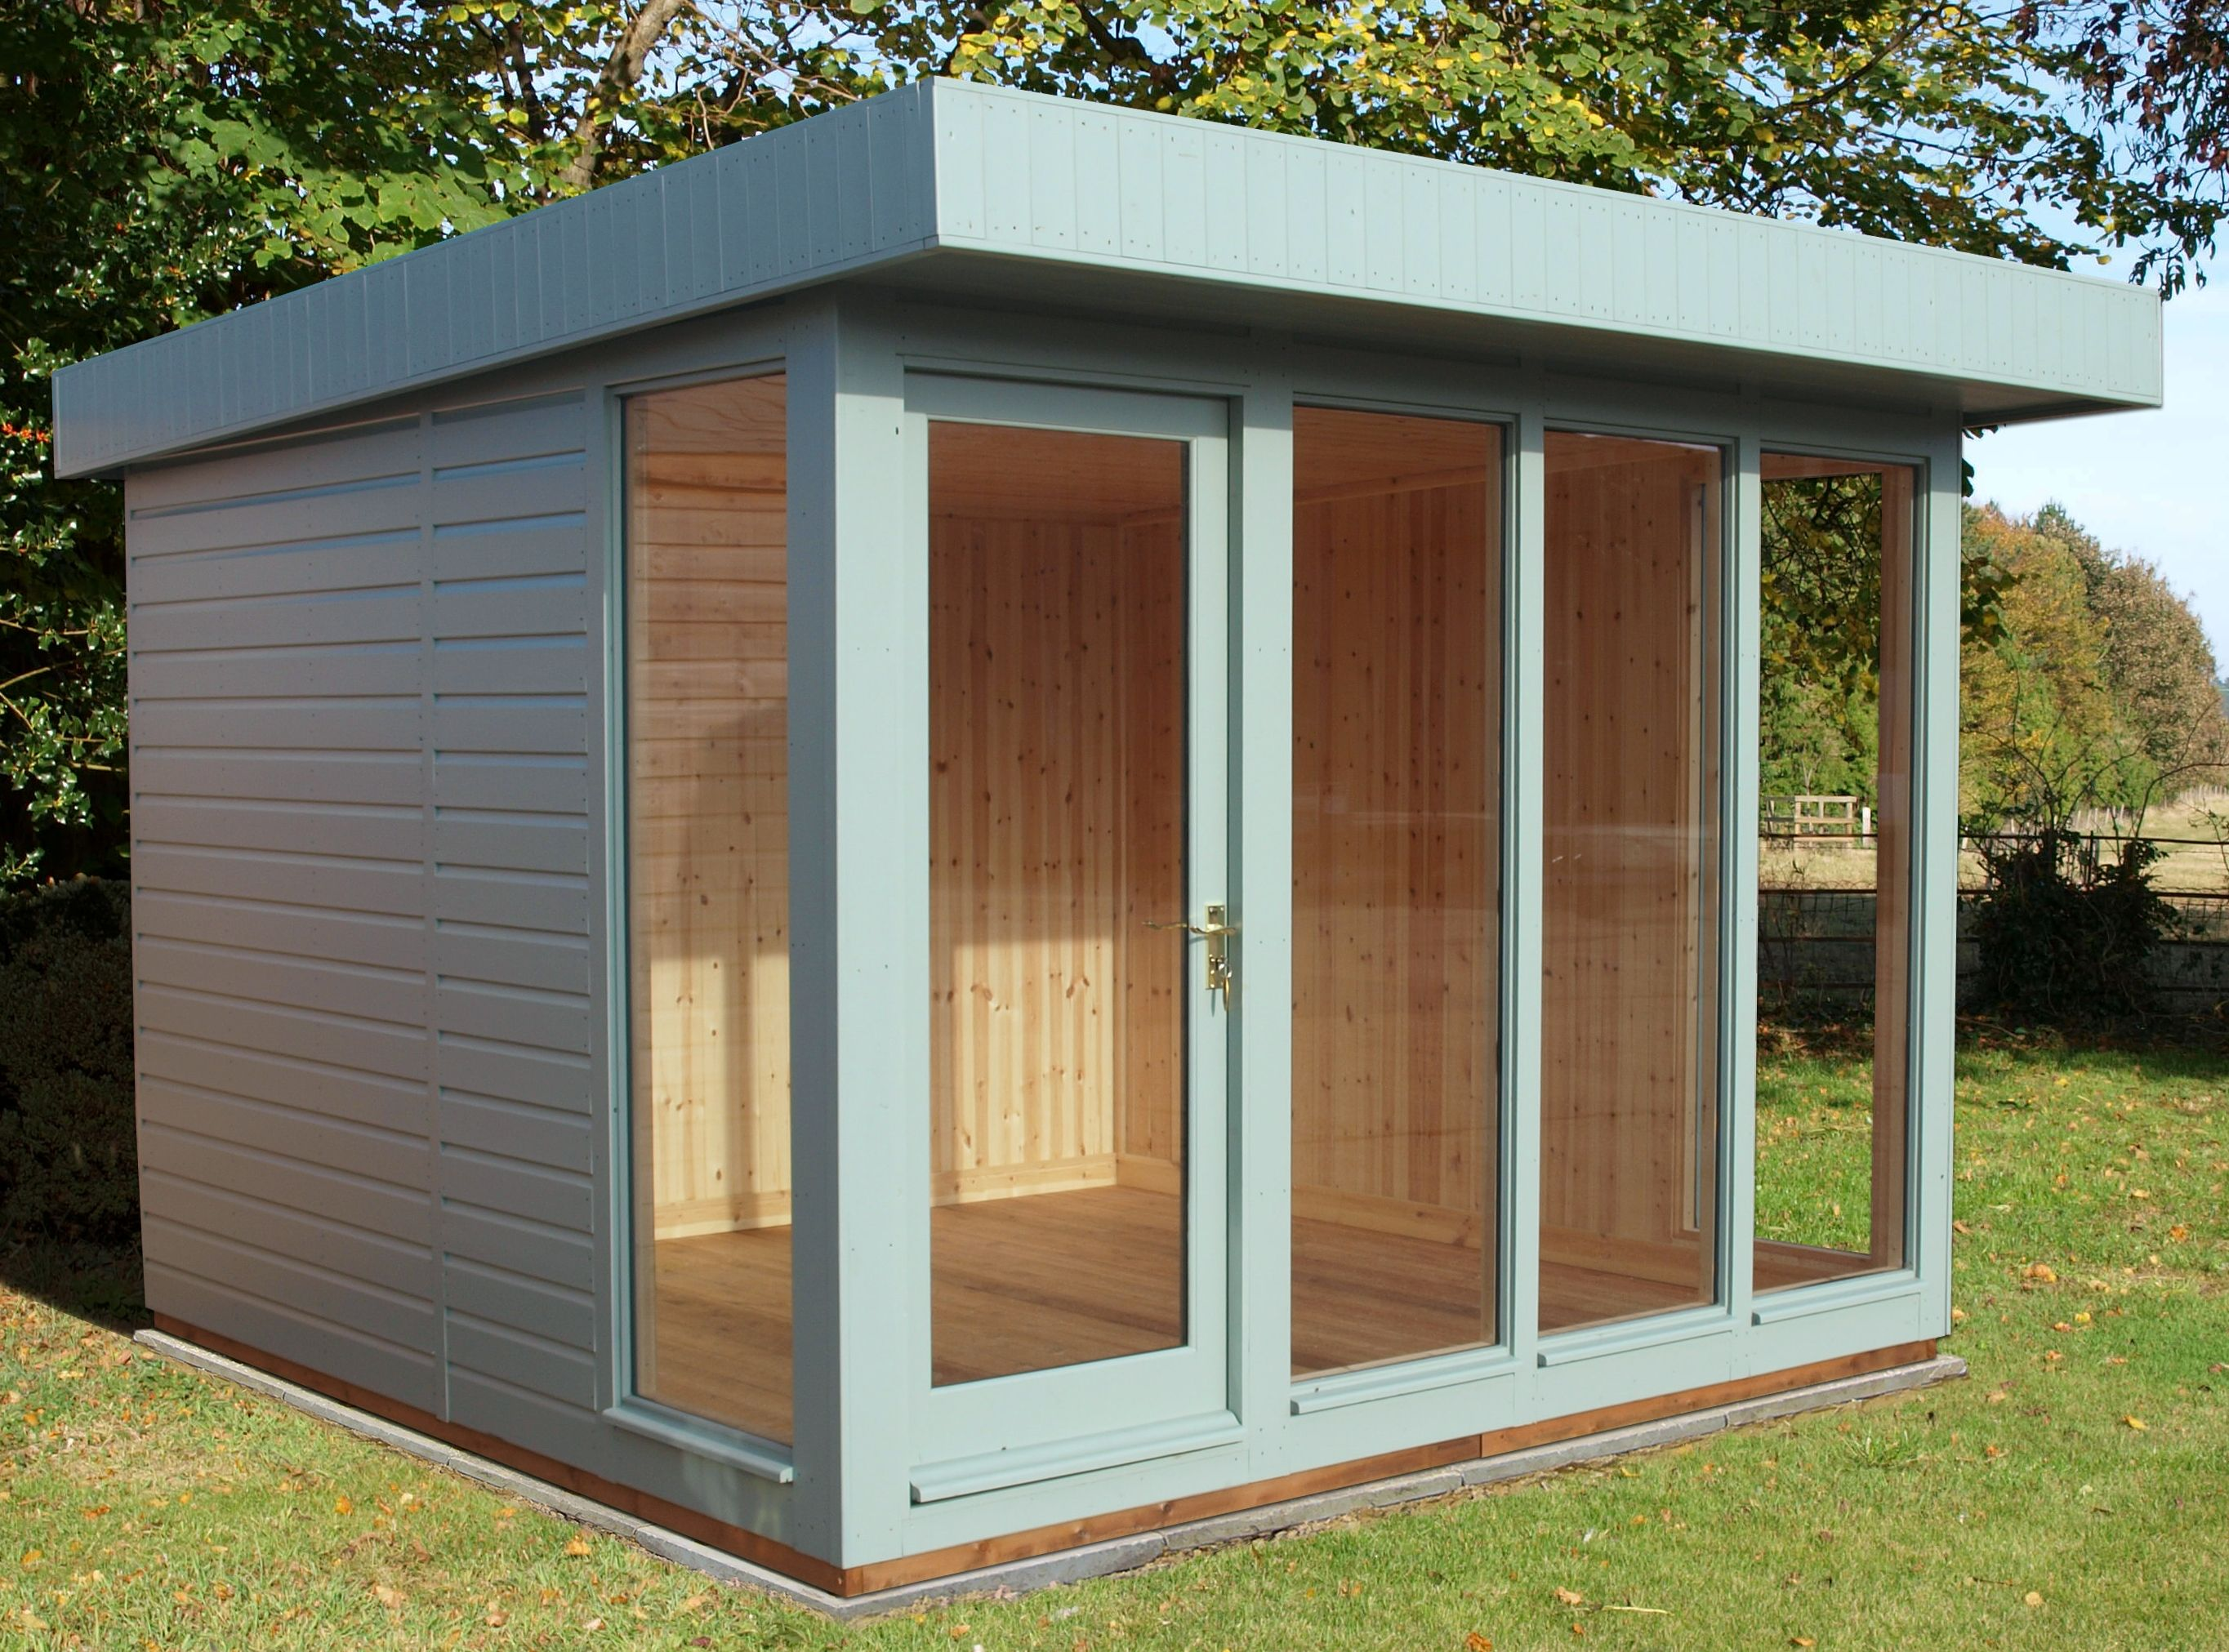 Garden Shed Designs storage sheds designs Backyard Shed Designs Contemporary Garden Sheds Where To Search For Diy Shed Plans